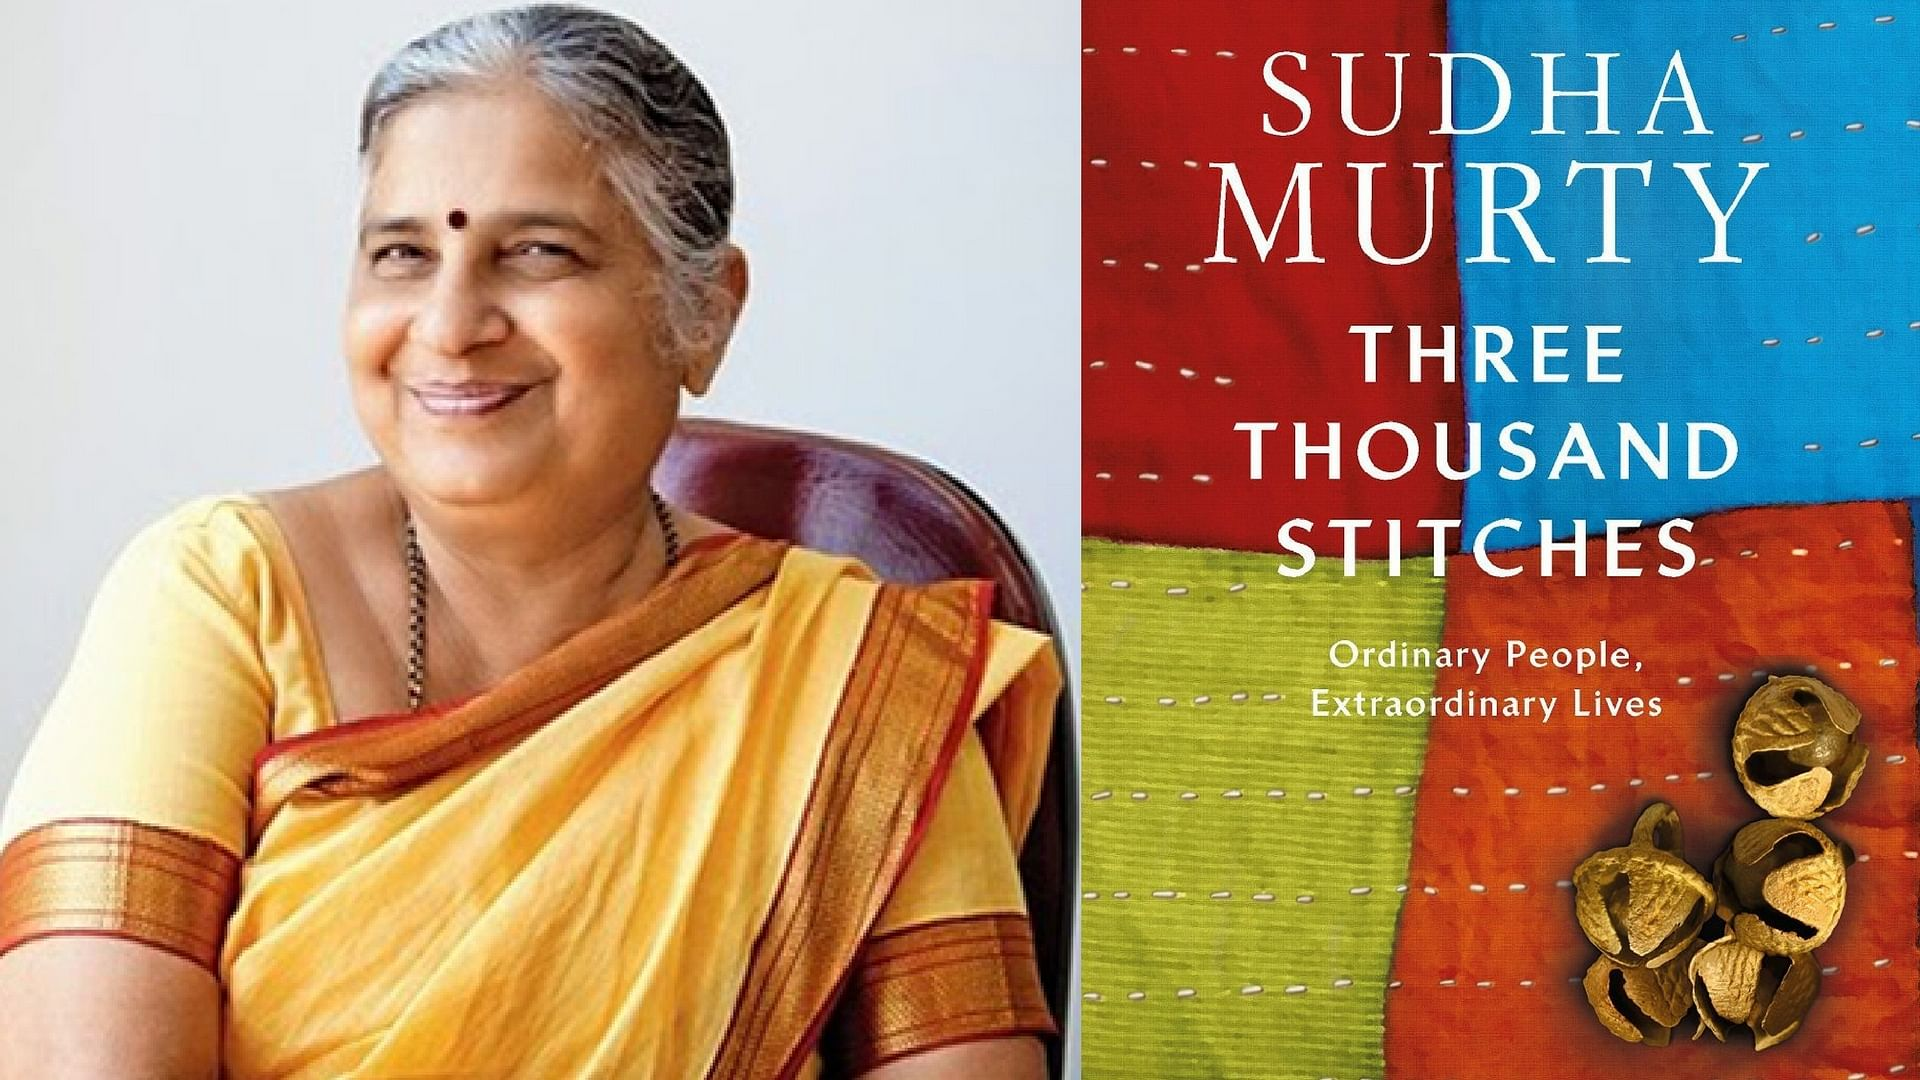 Three Thousand Stitches': Sudha Murty Roots Her Book in Reality